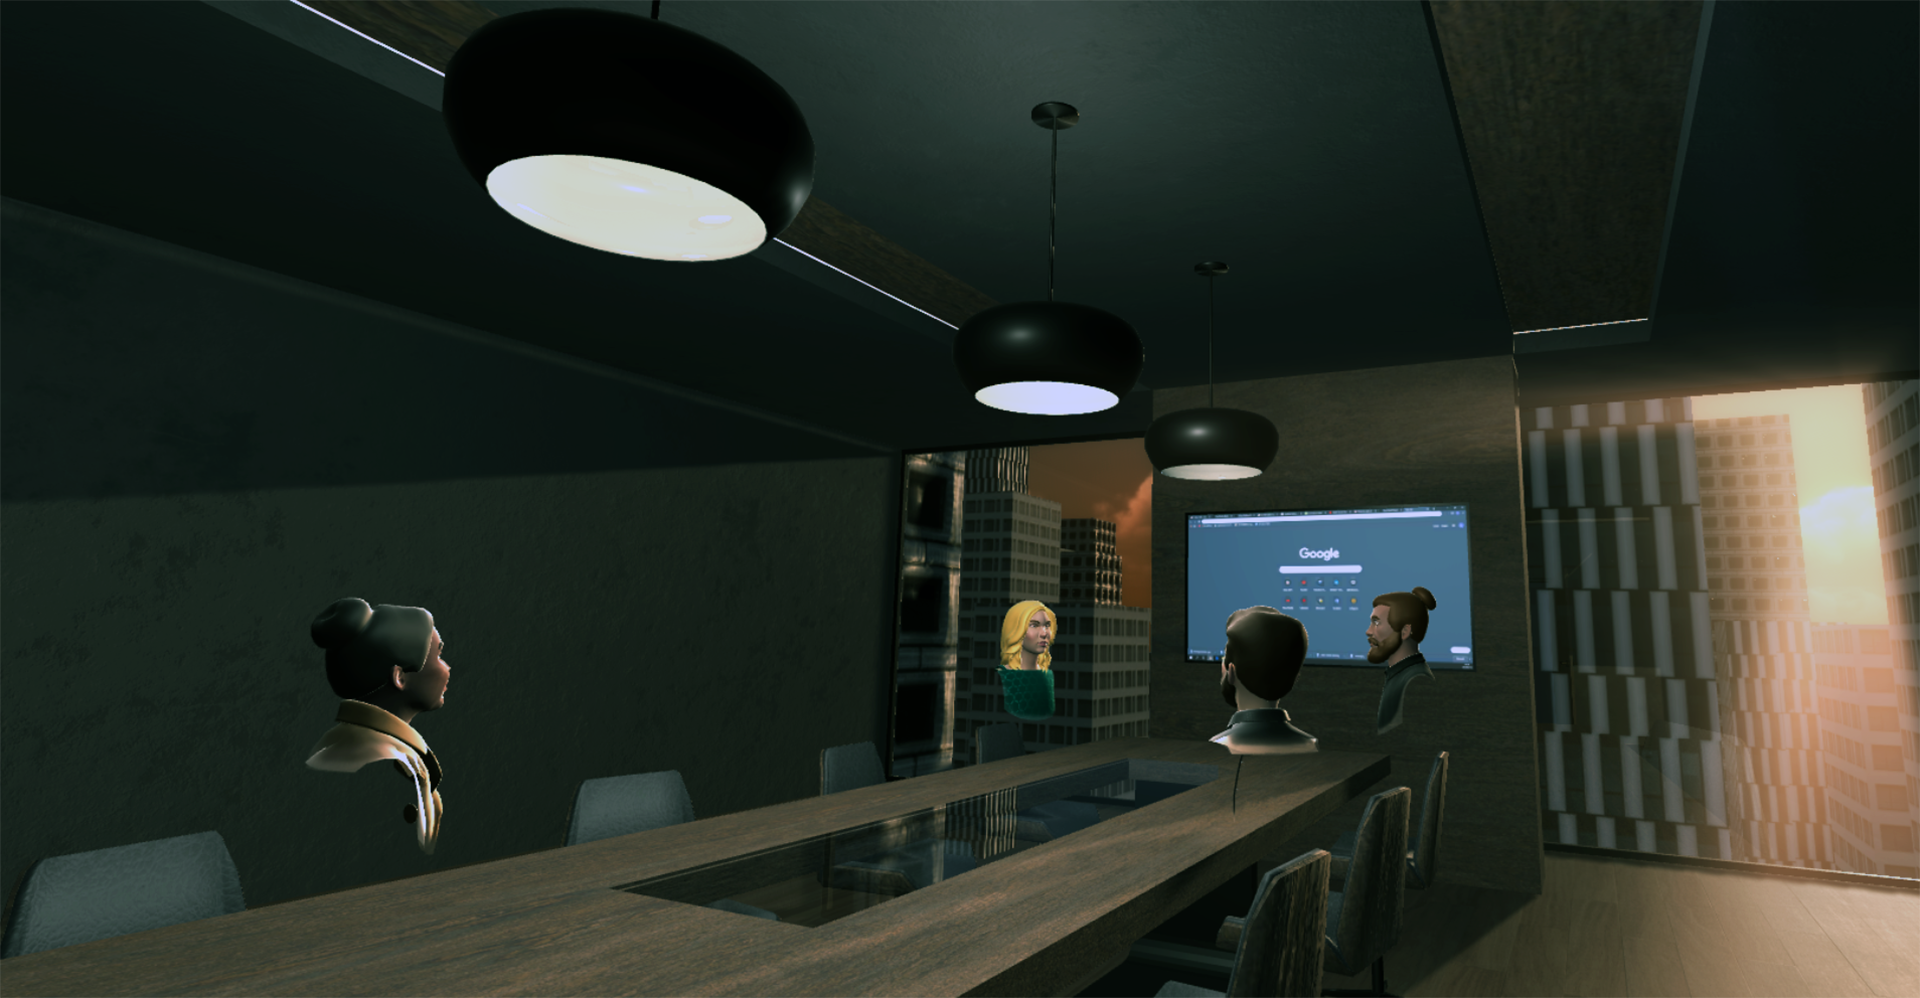 Boardroom Meetings in Virtual Reality